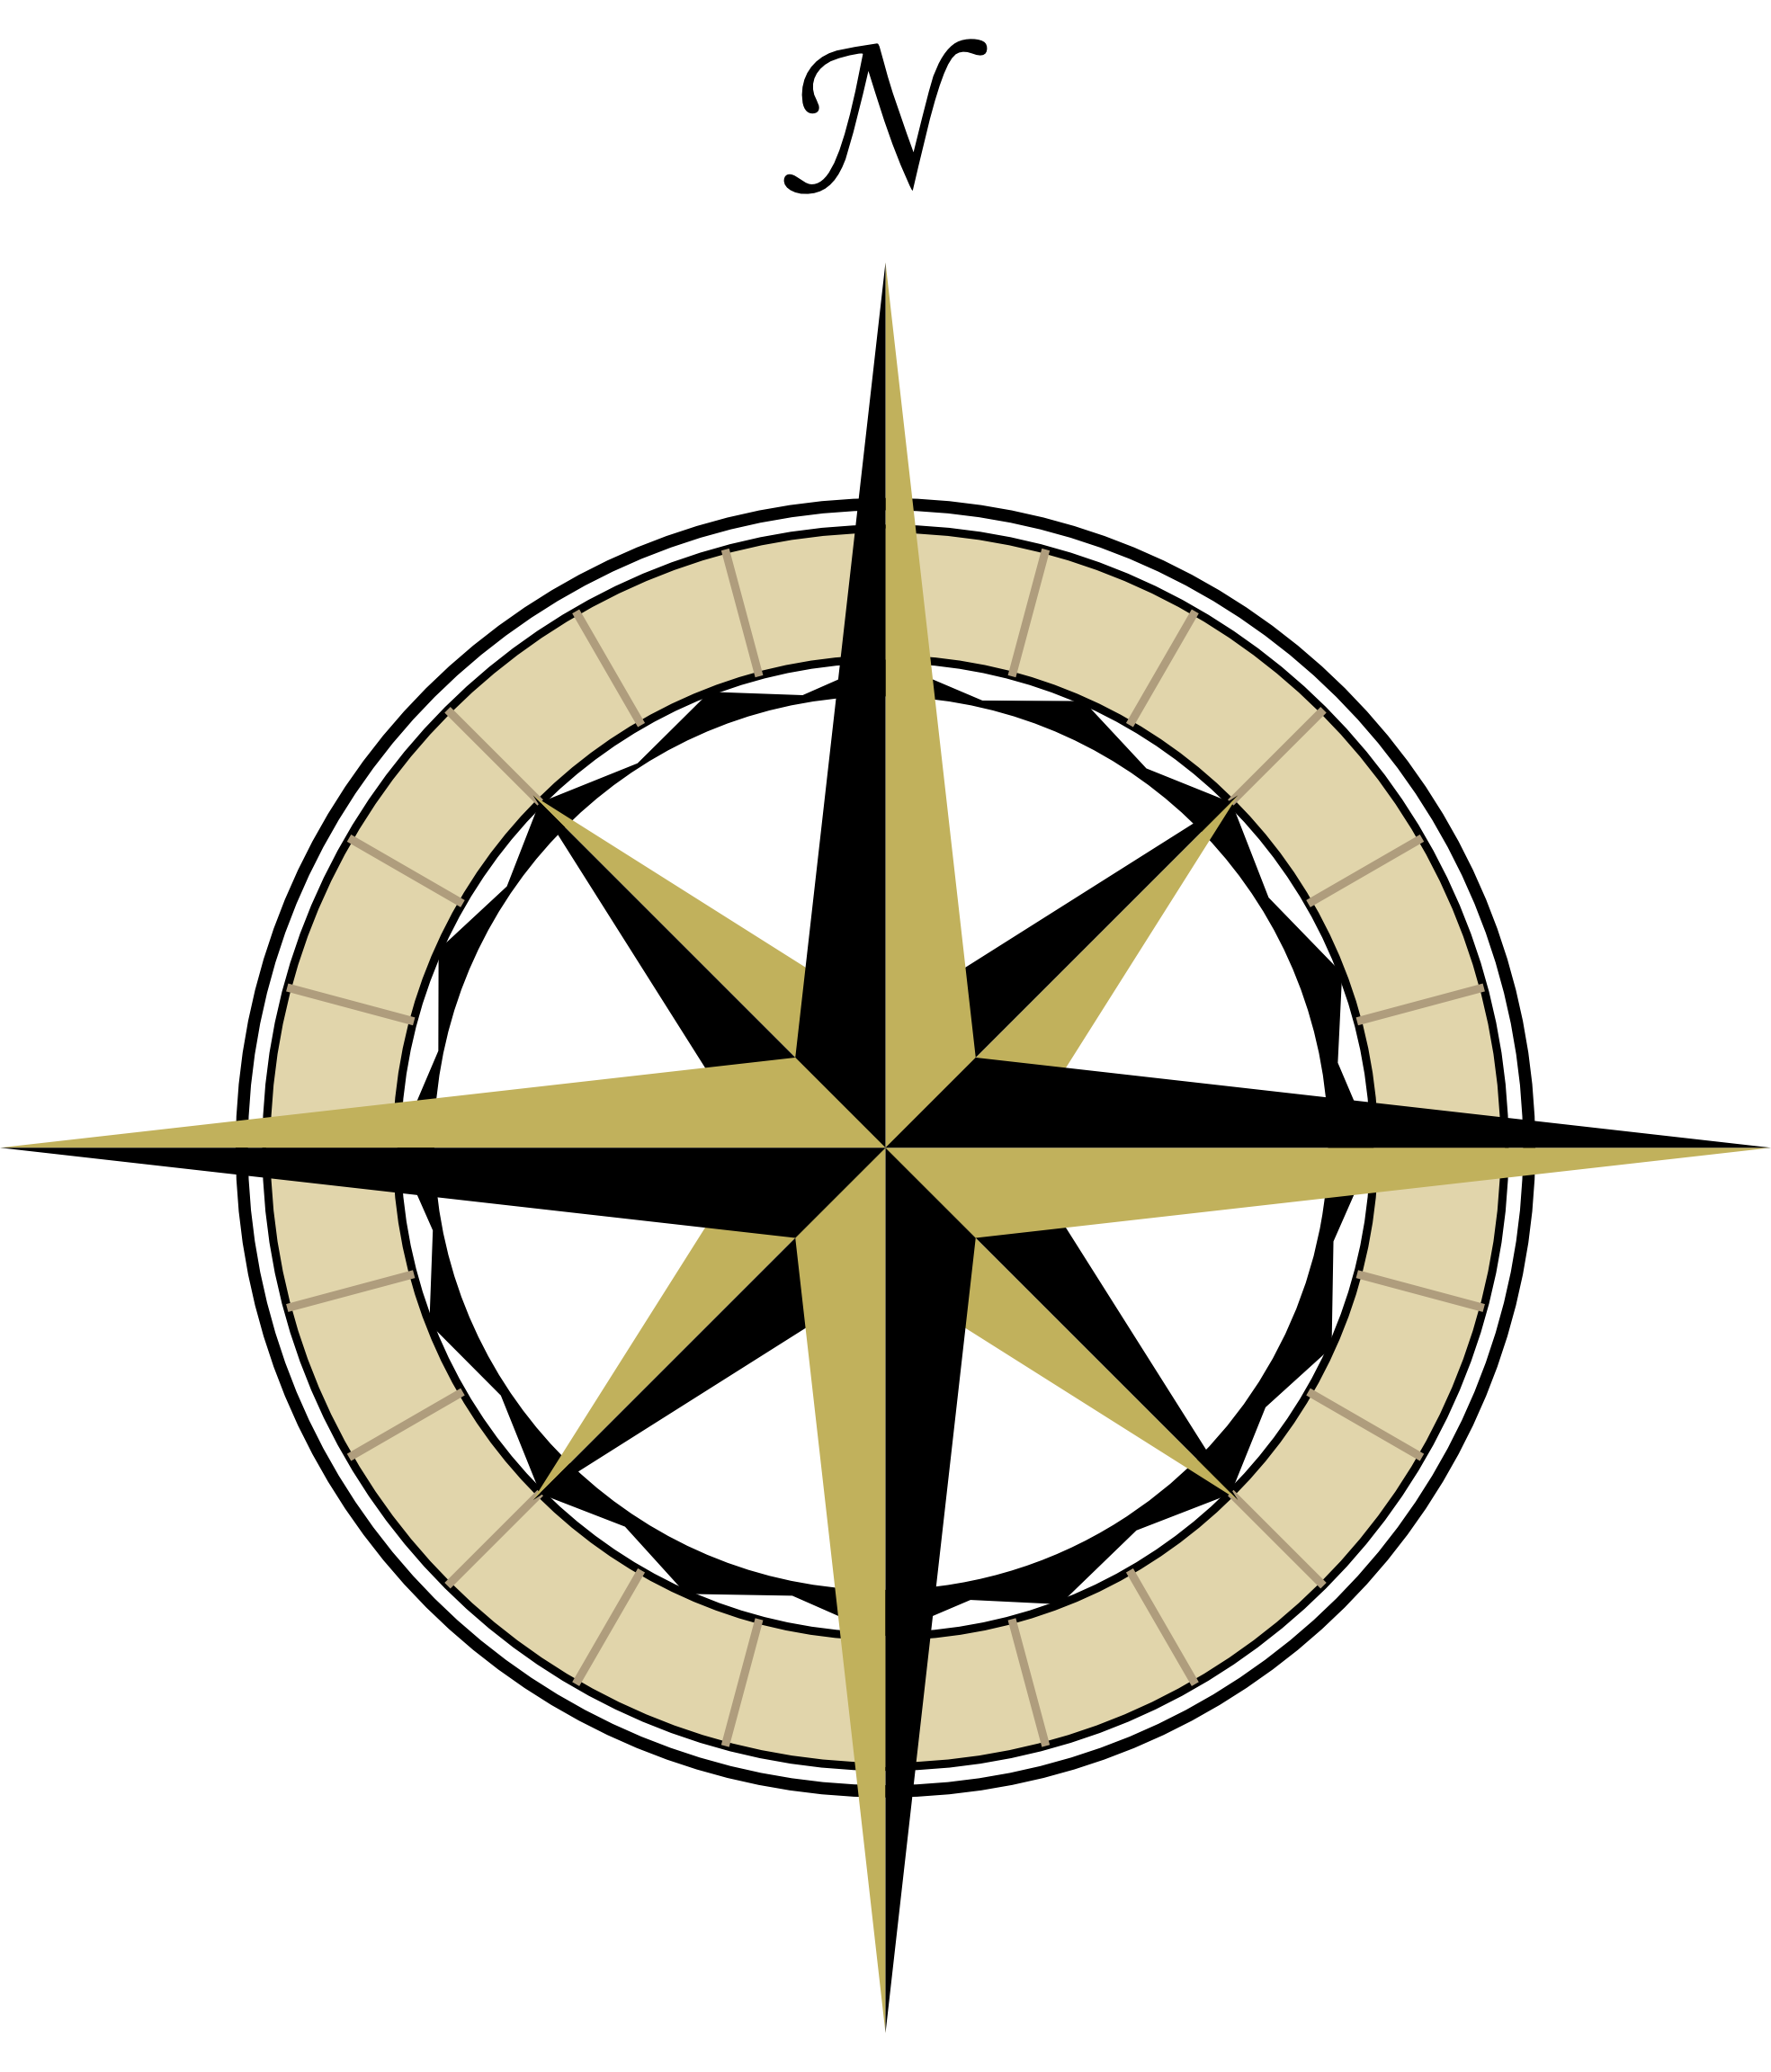 svg library download Flowers Xochi Wind Rose Compass Rose